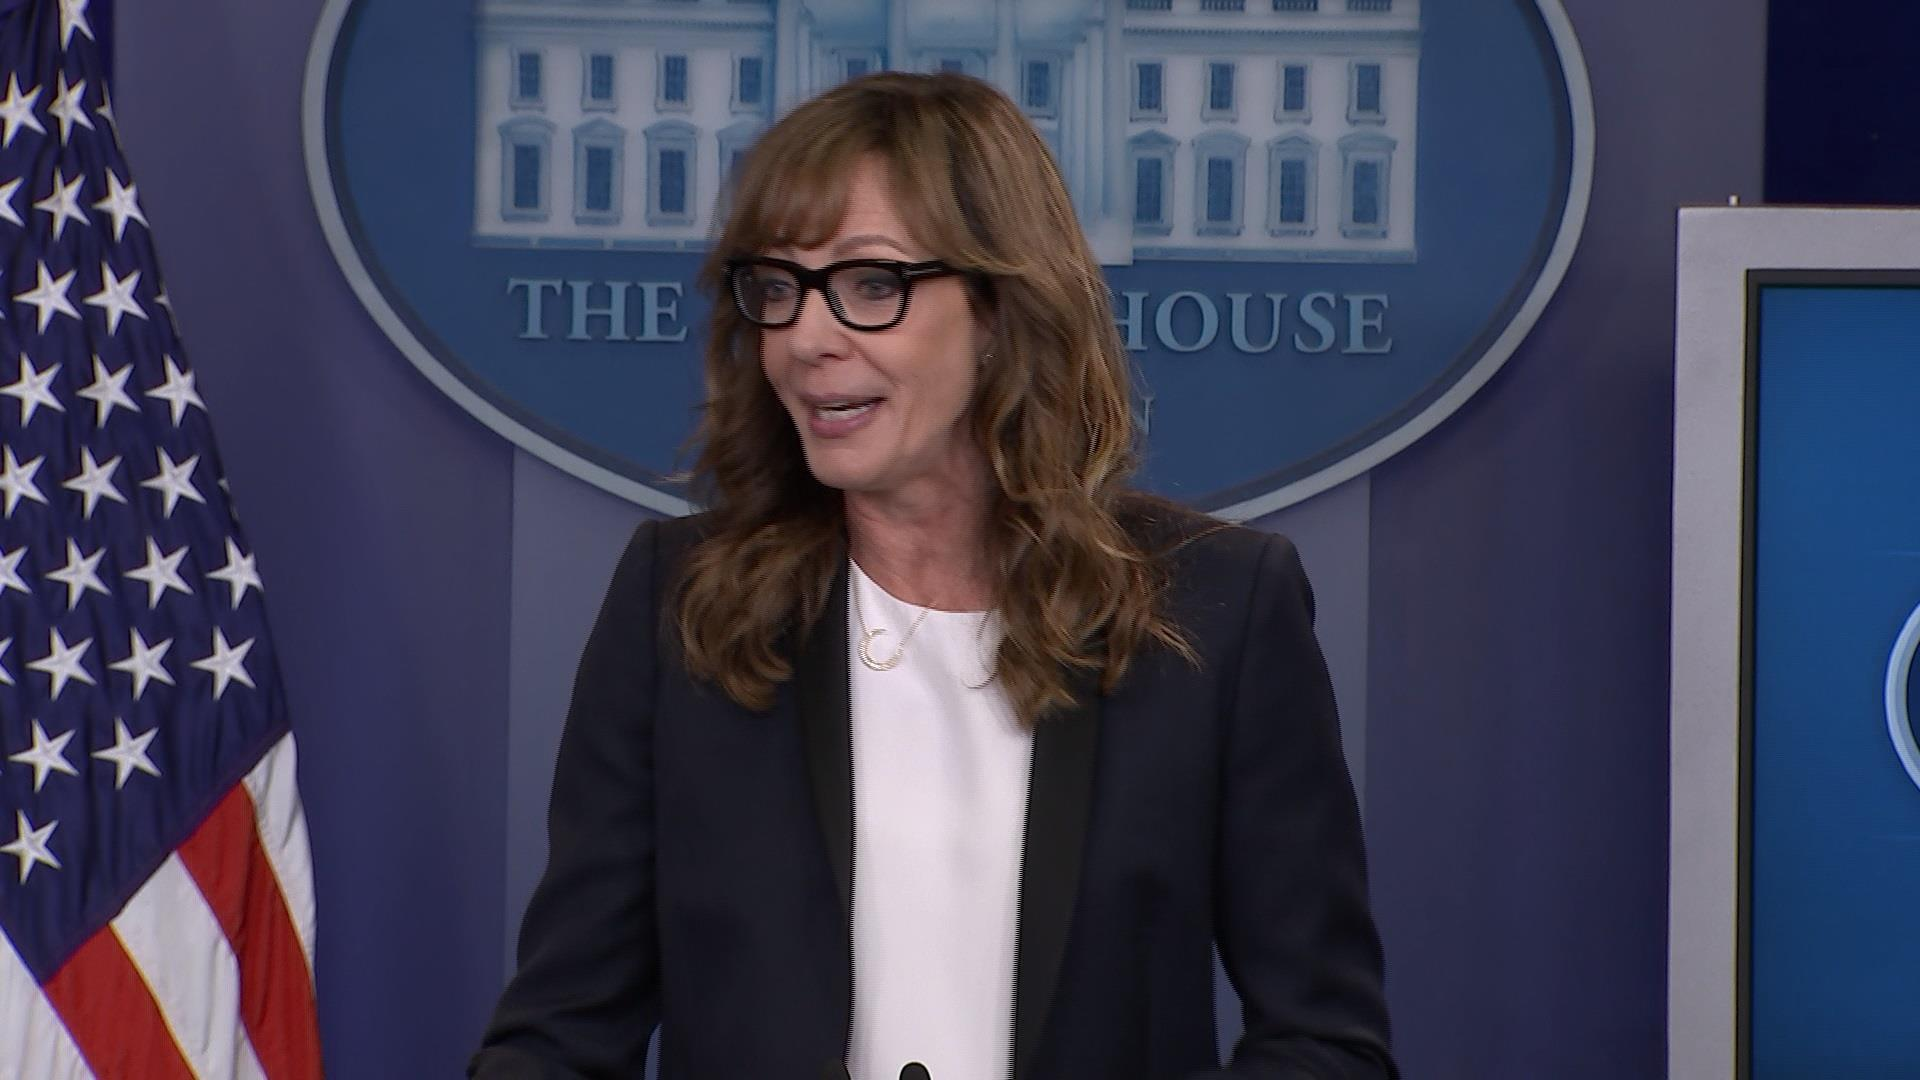 Allison Janney surprises press at WH briefing